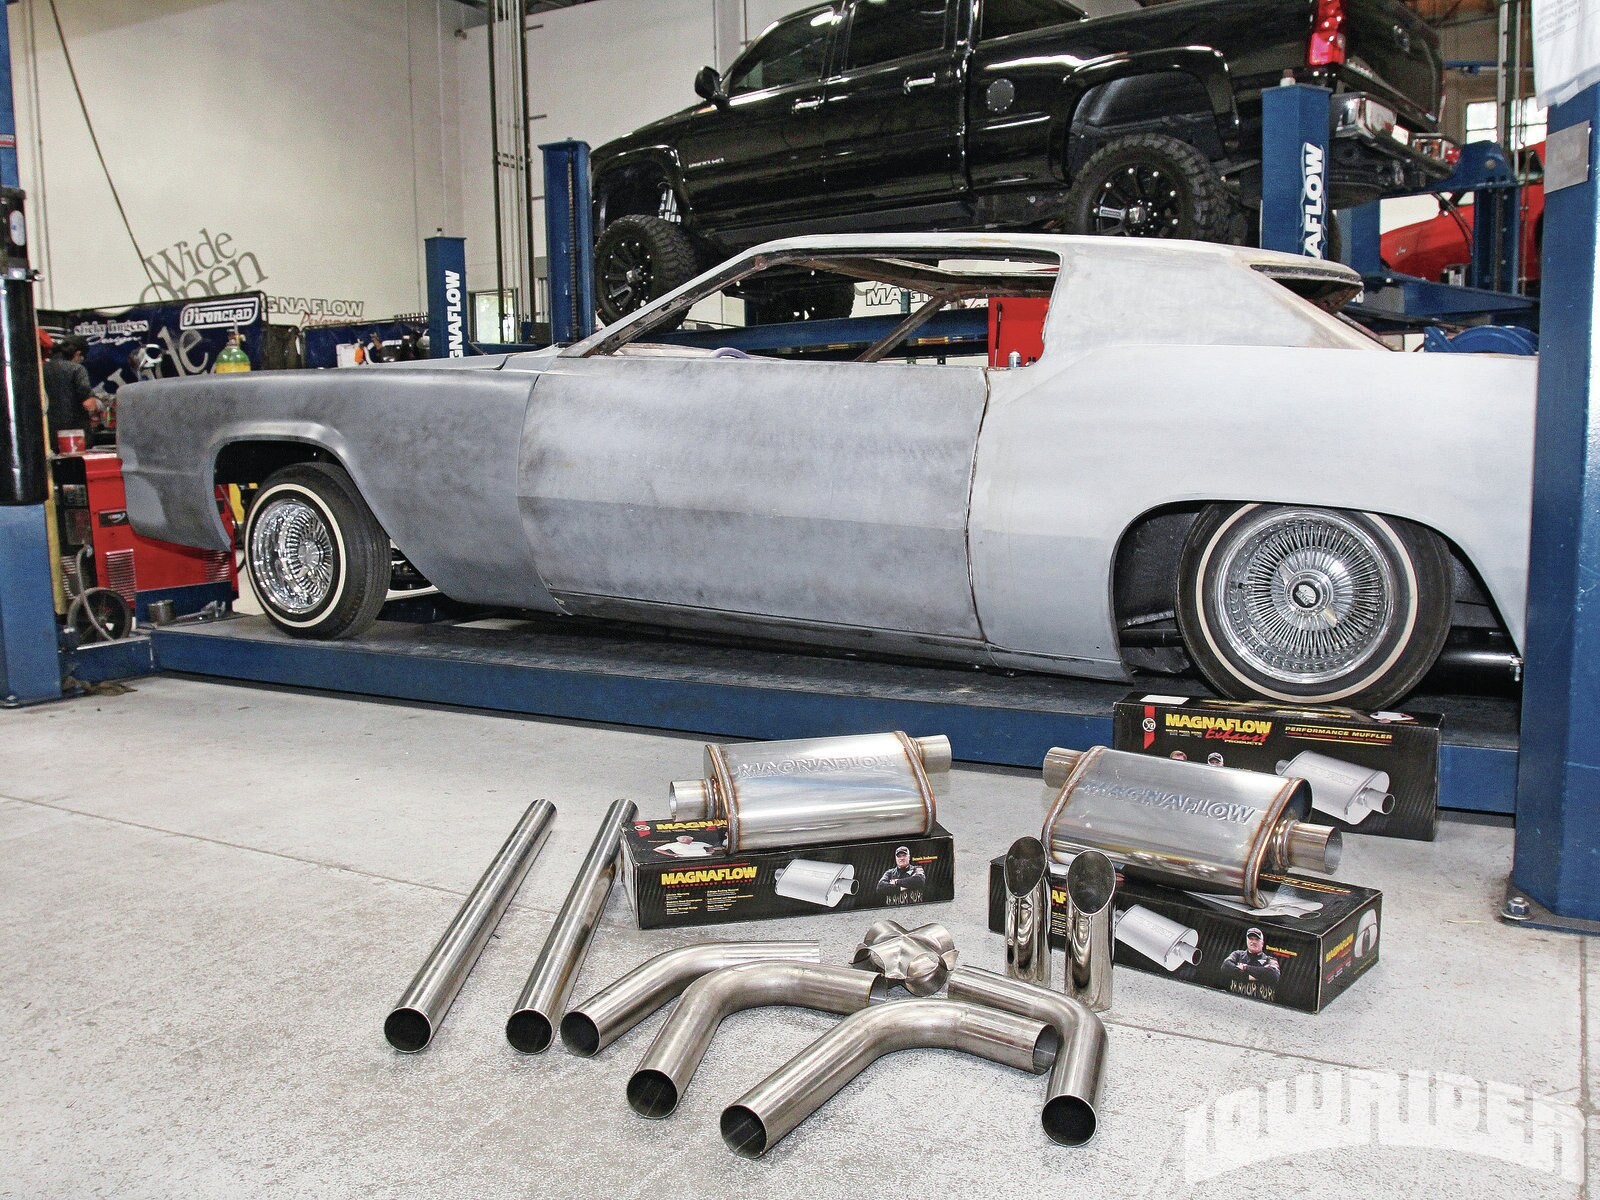 1212-lrmp-01-o-magnaflow-performance-exhaust-project-helldorado1